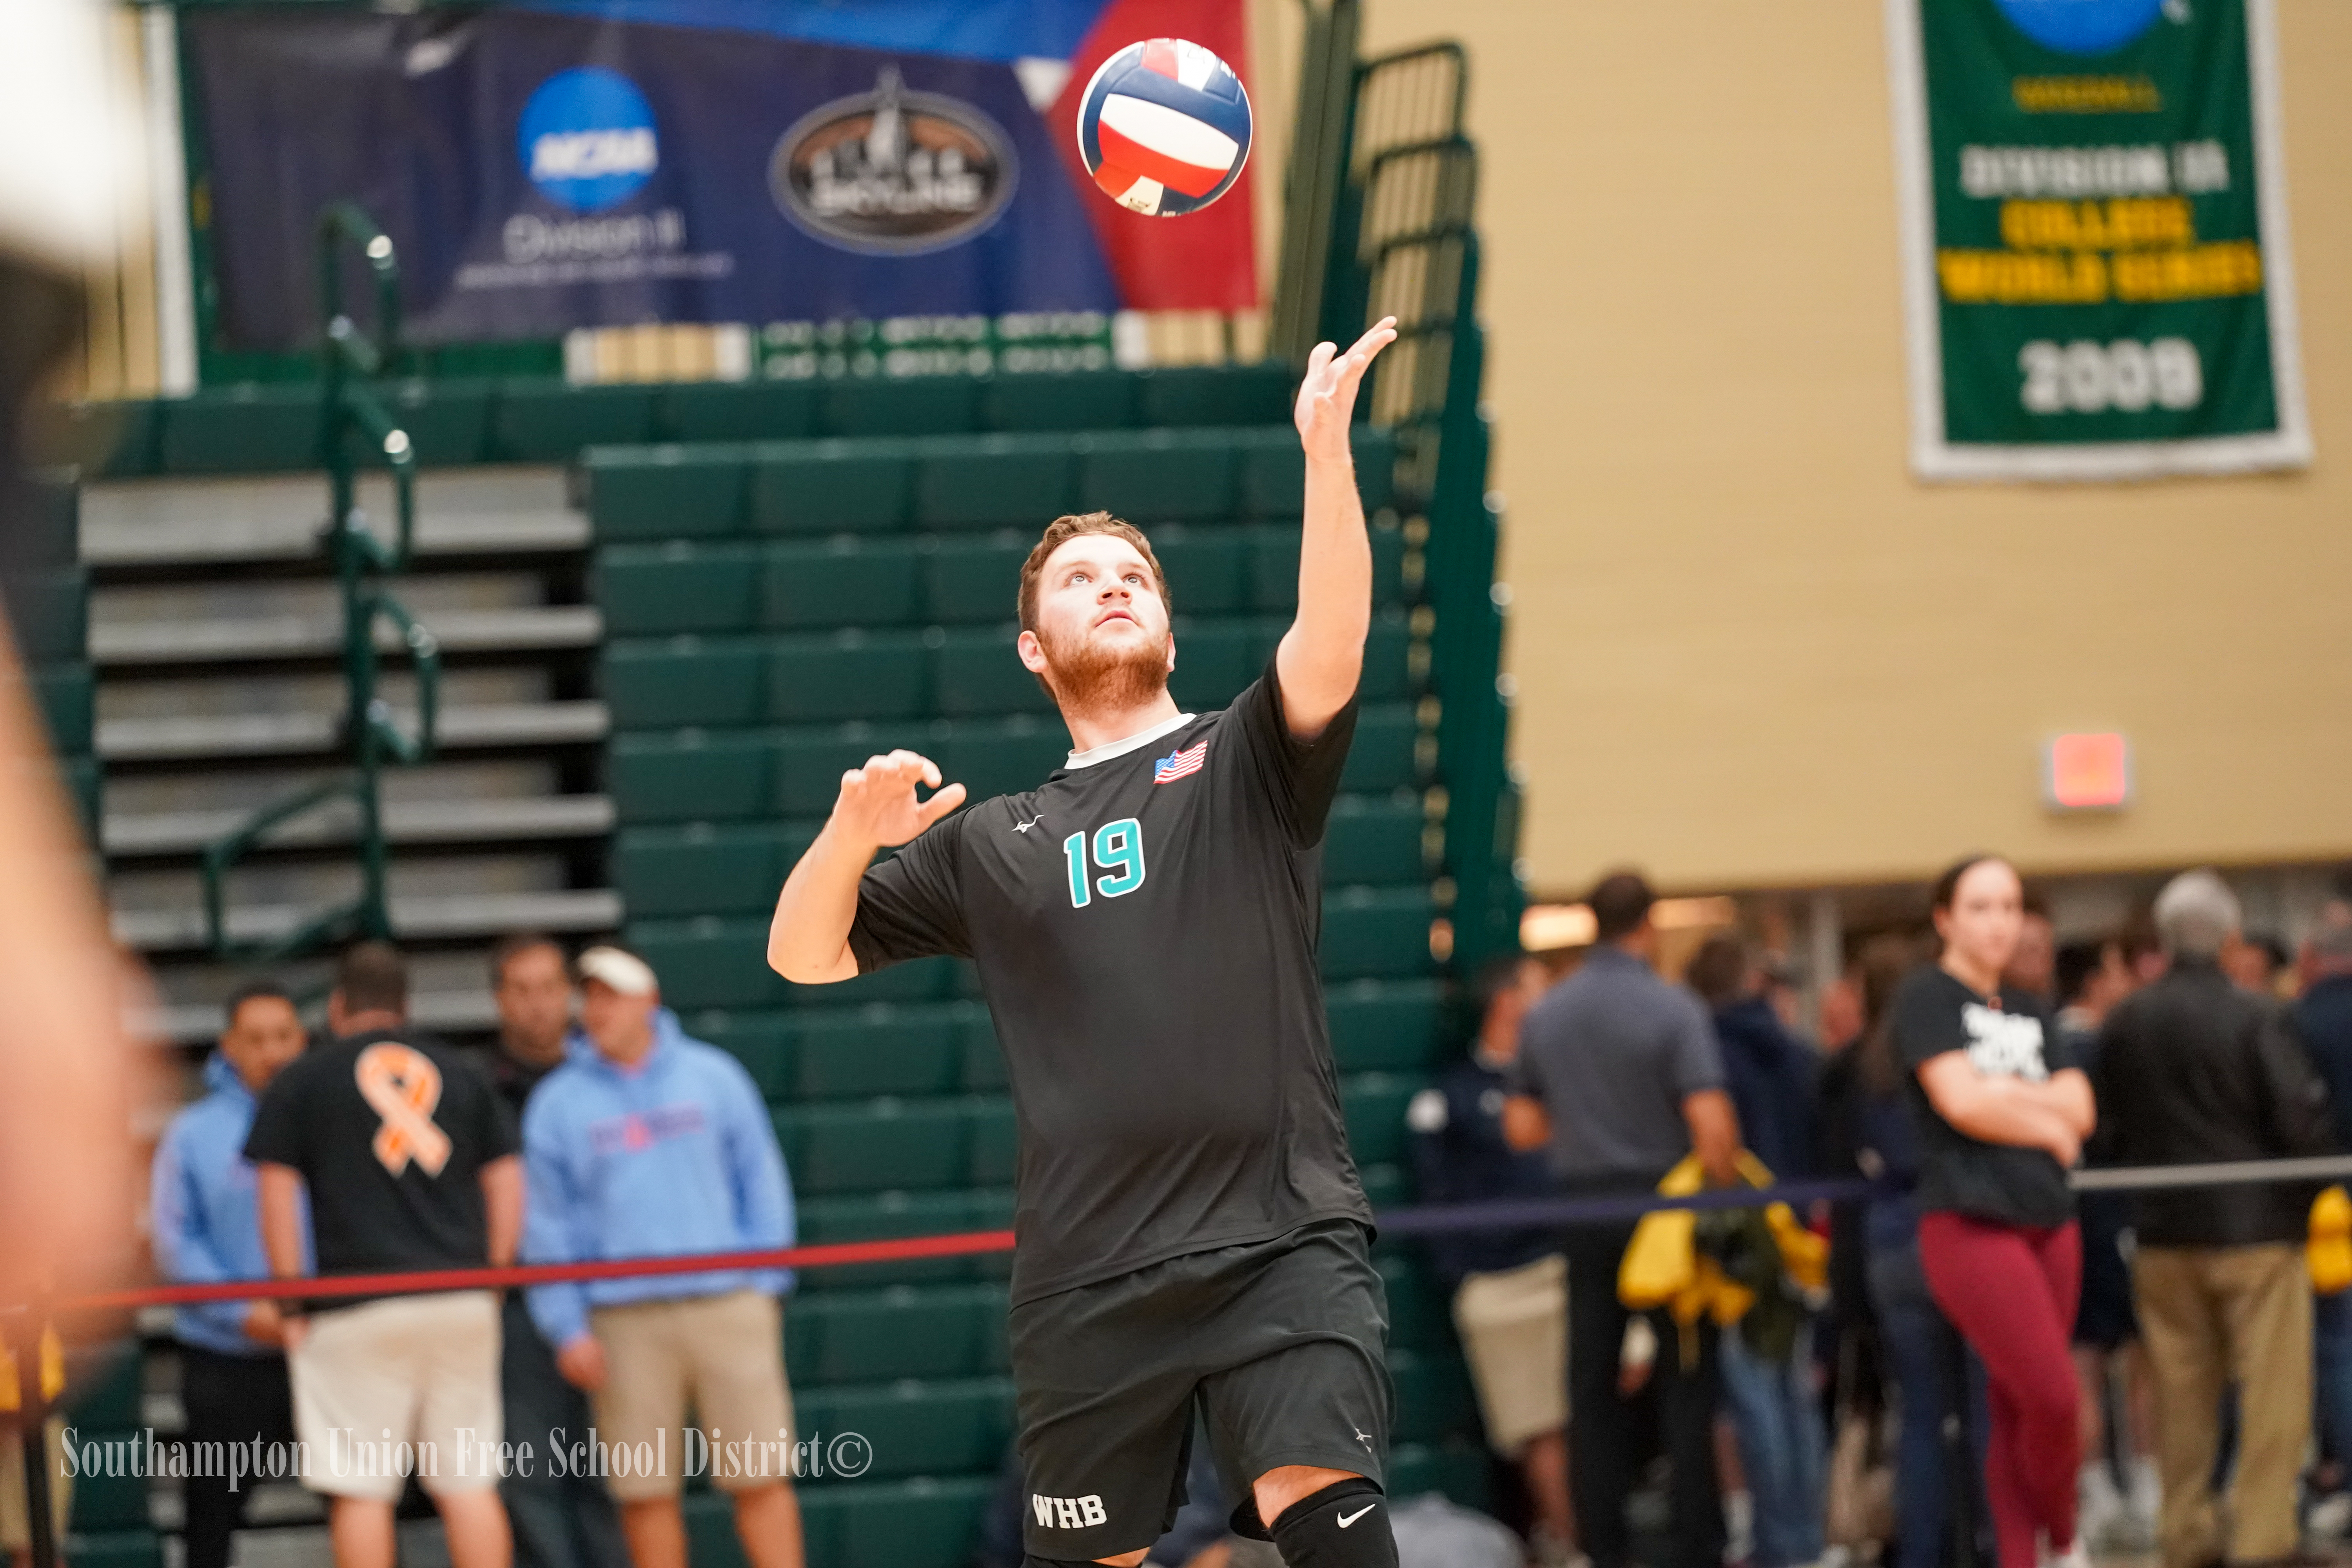 Westhampton Beach senior Donovan Kerns serves the ball.